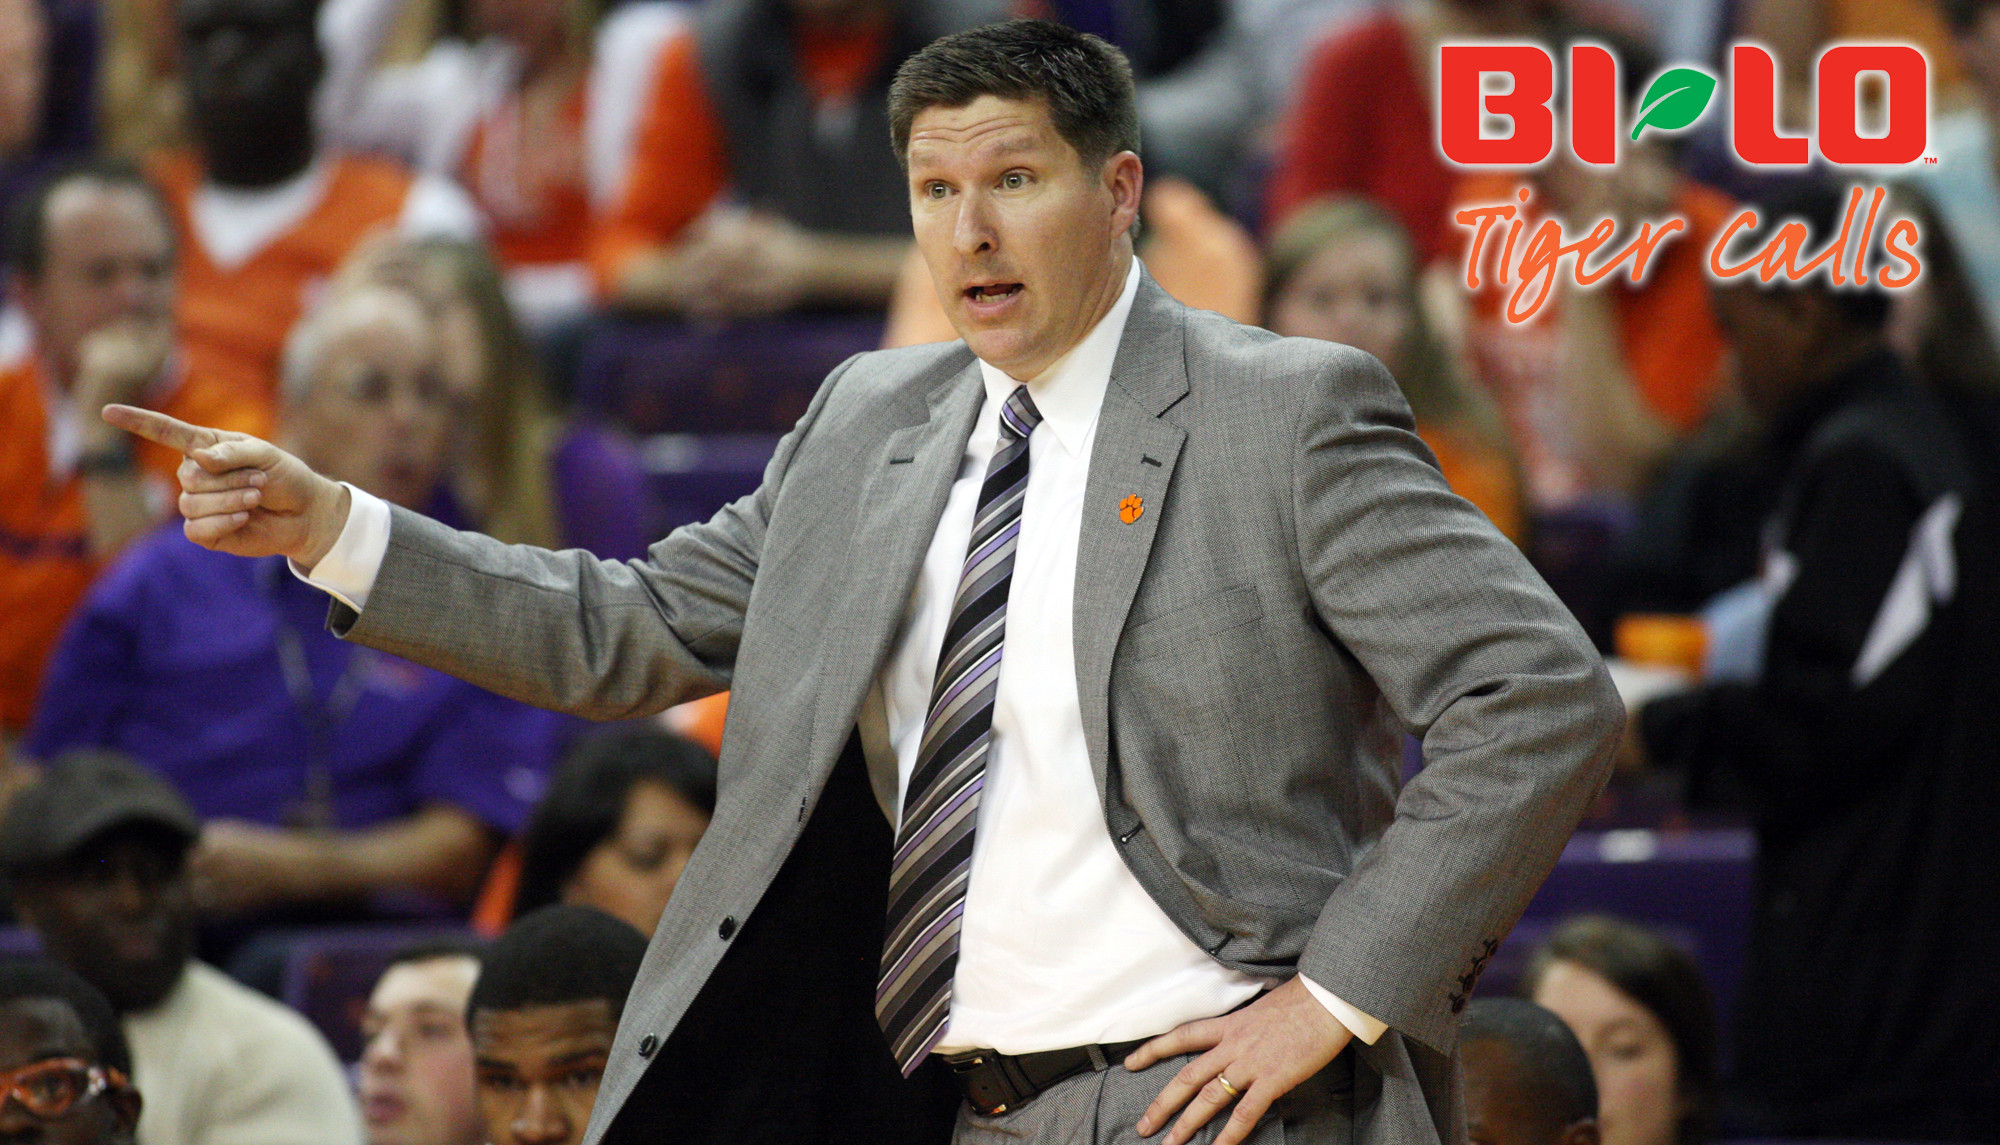 BI-LO Tiger Calls with Brad Brownell Tonight